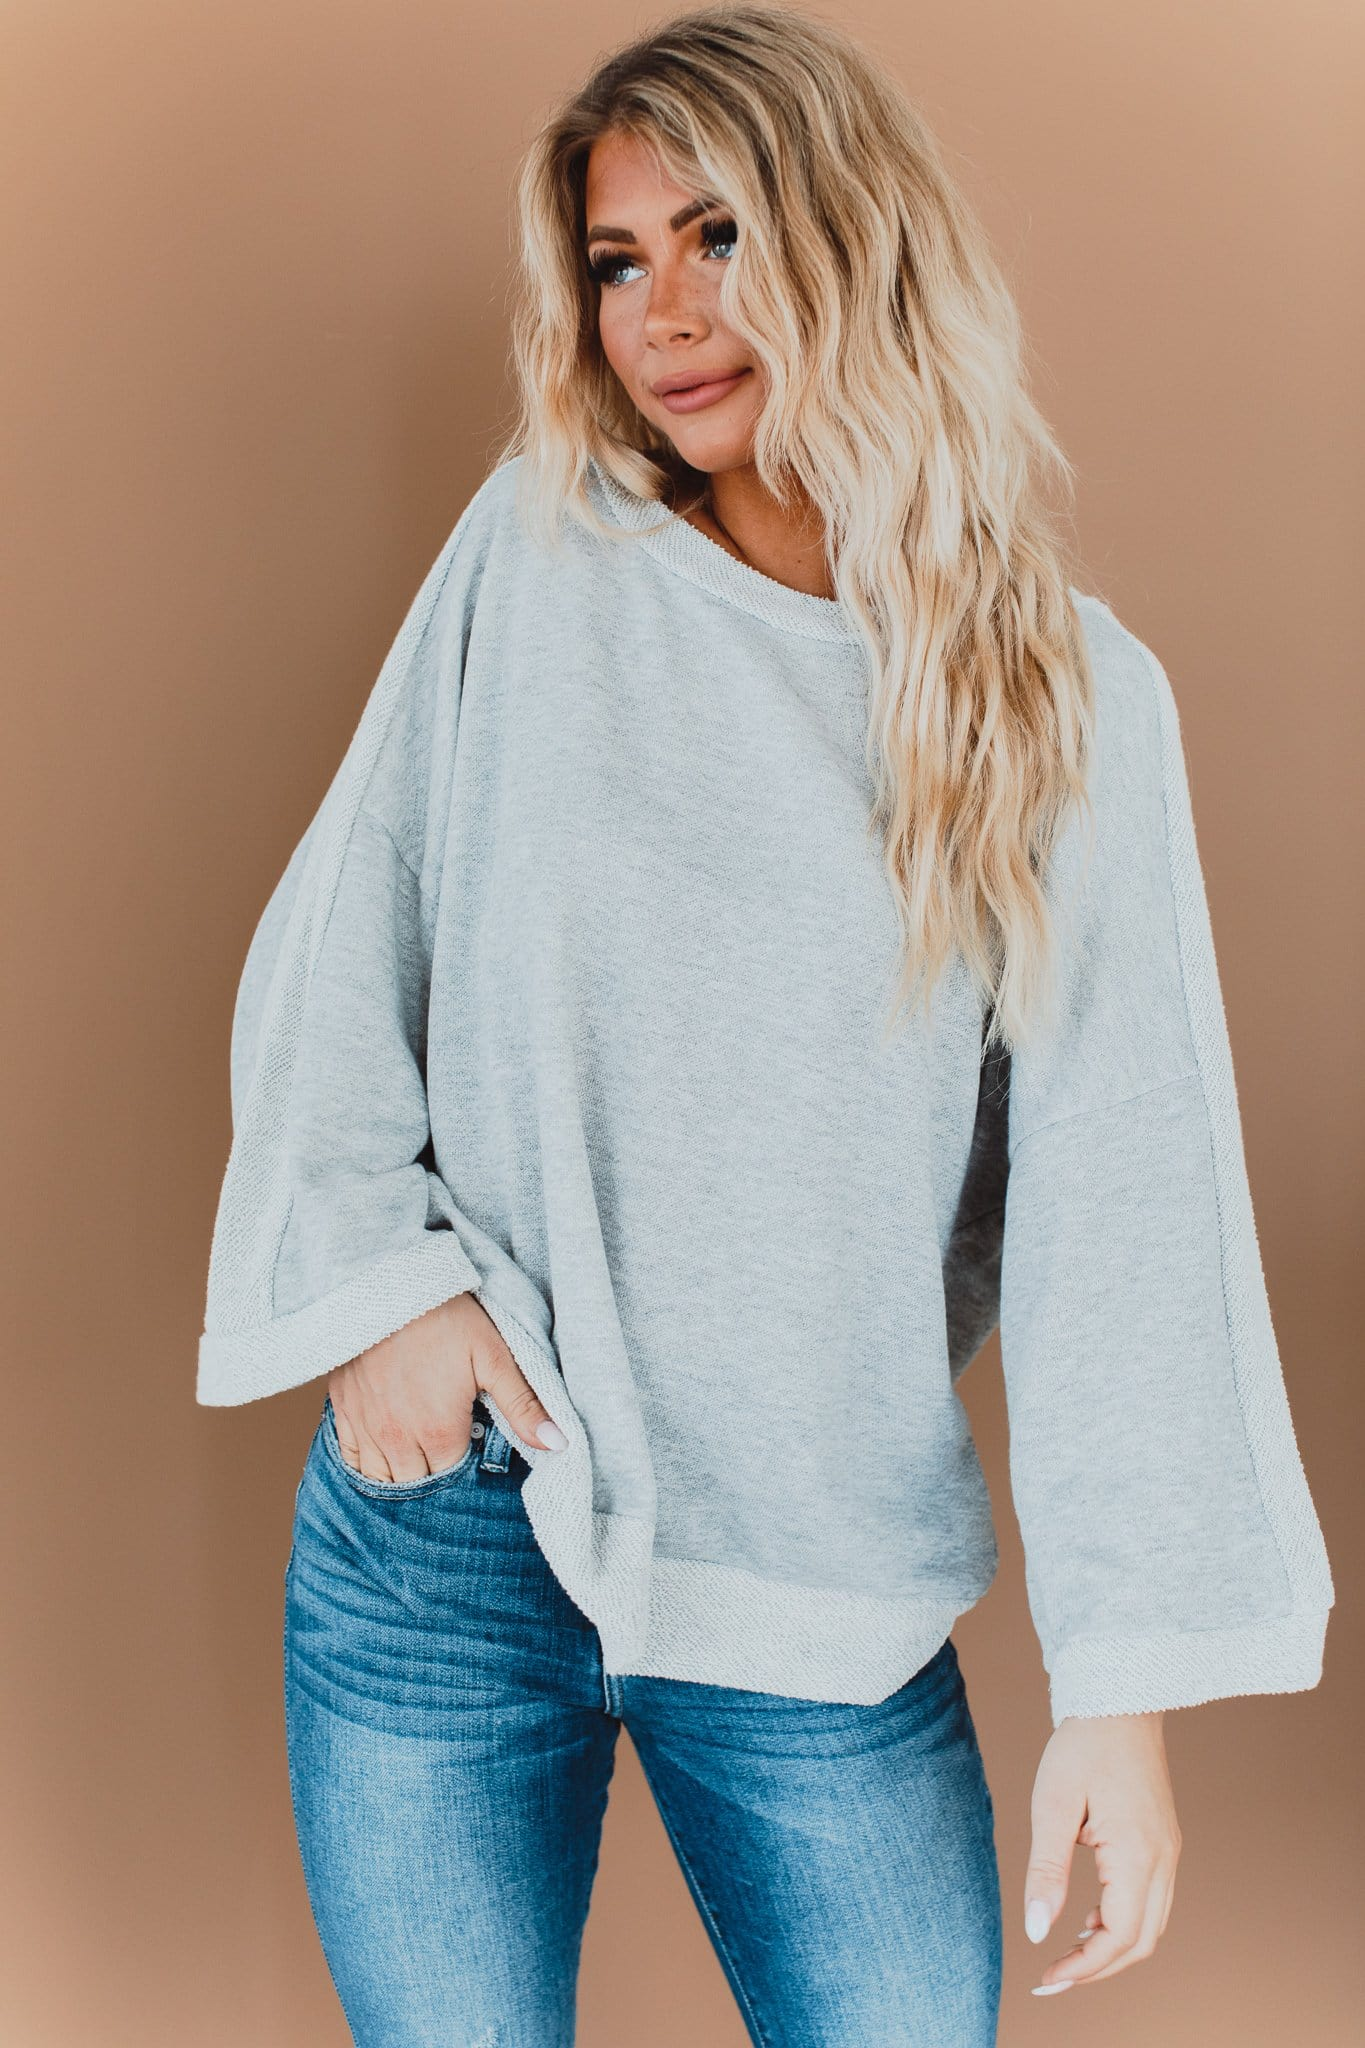 The Rivera Pullover Sweater Top in Grey